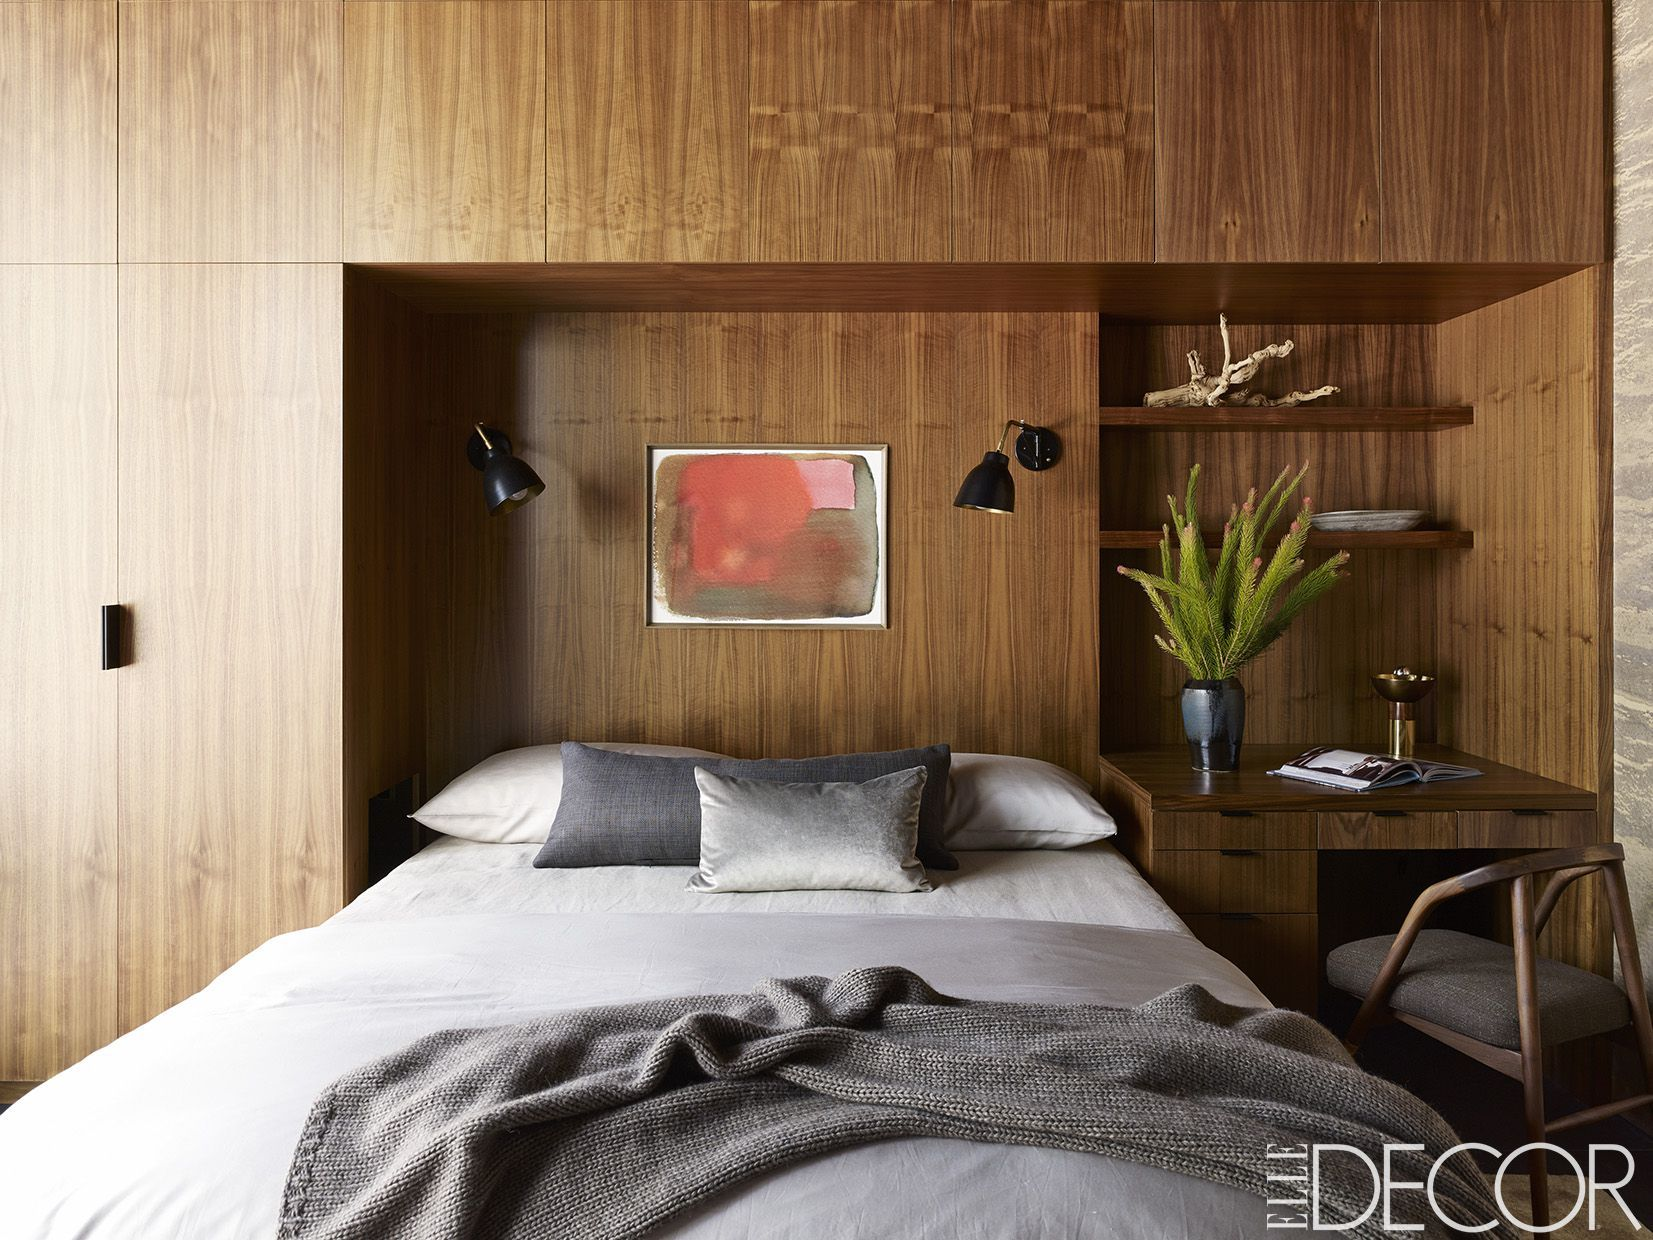 50 Small Bedroom Design Ideas - Decorating Tips for Small ... on Small Room Decoration  id=70501